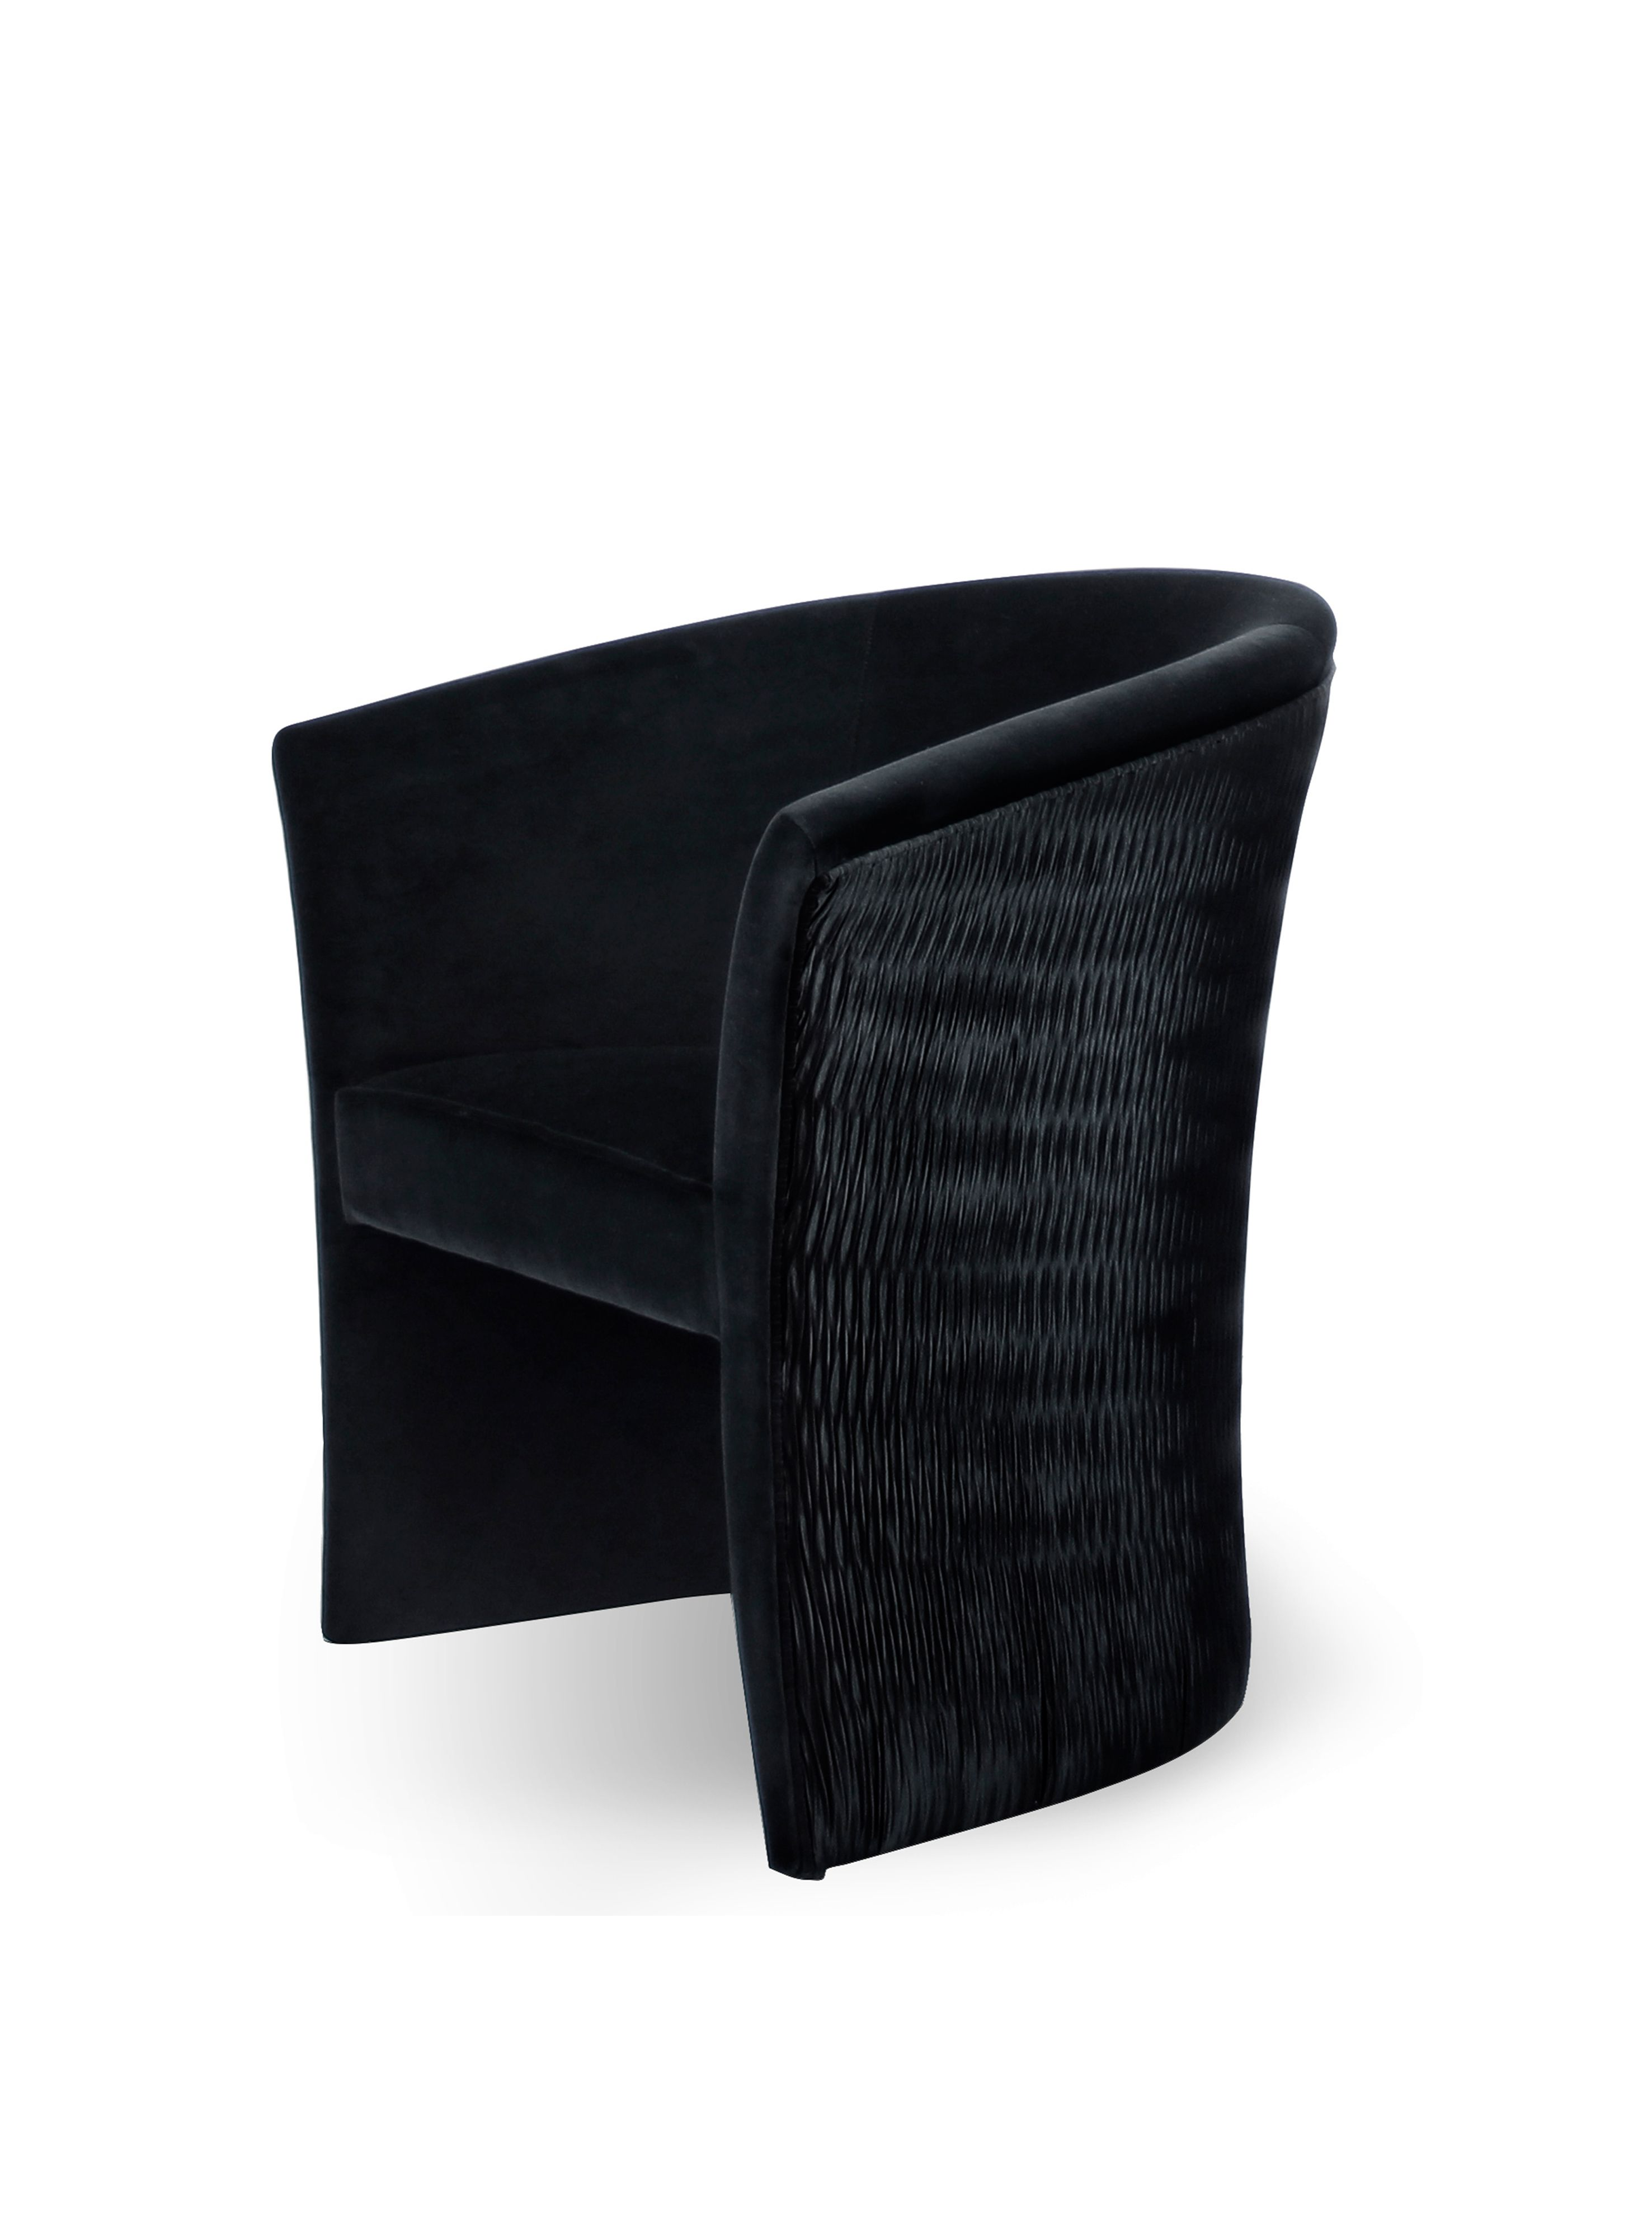 Enigma Chair by KOKET | http://www.bykoket.com/guilty-pleasures/upholstery/enigma-chair.php